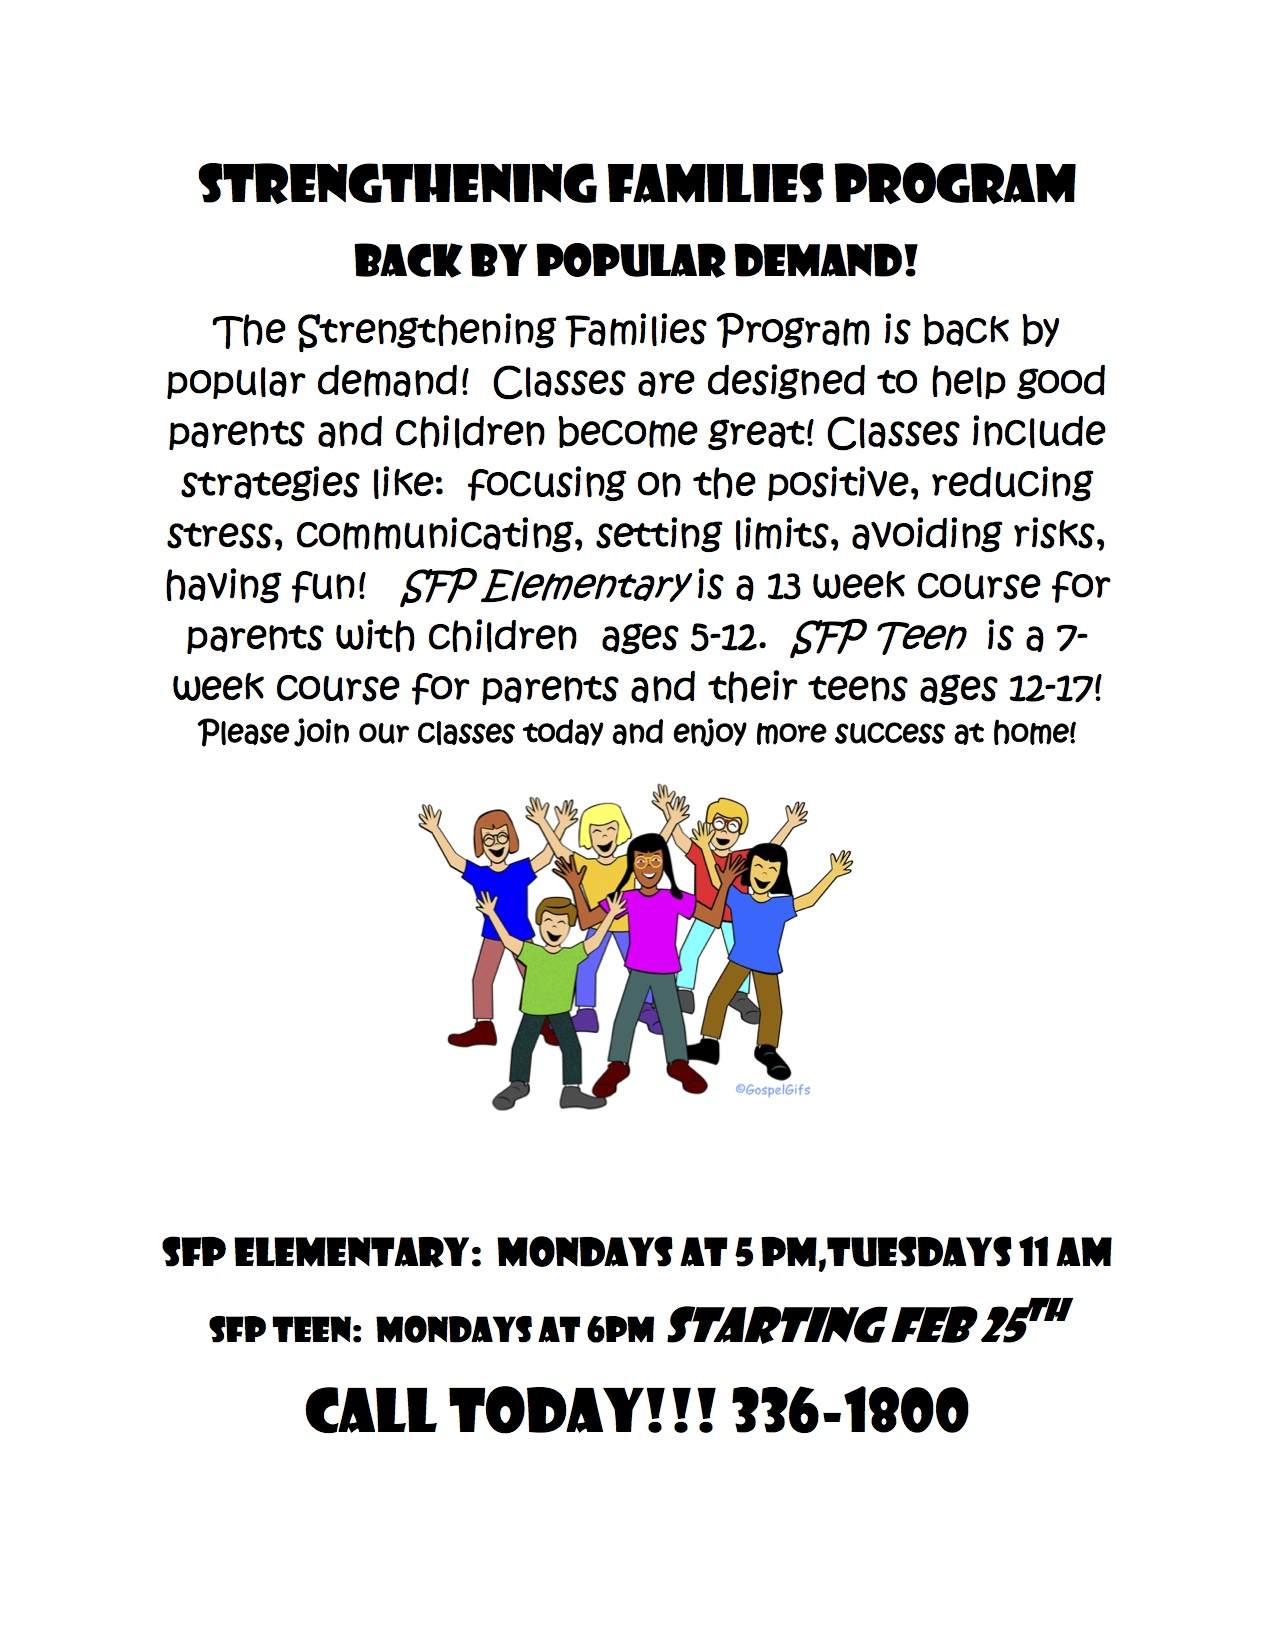 STRENGTHENING FAMILIES BACK BY POPULAR DEMAND_2 copy